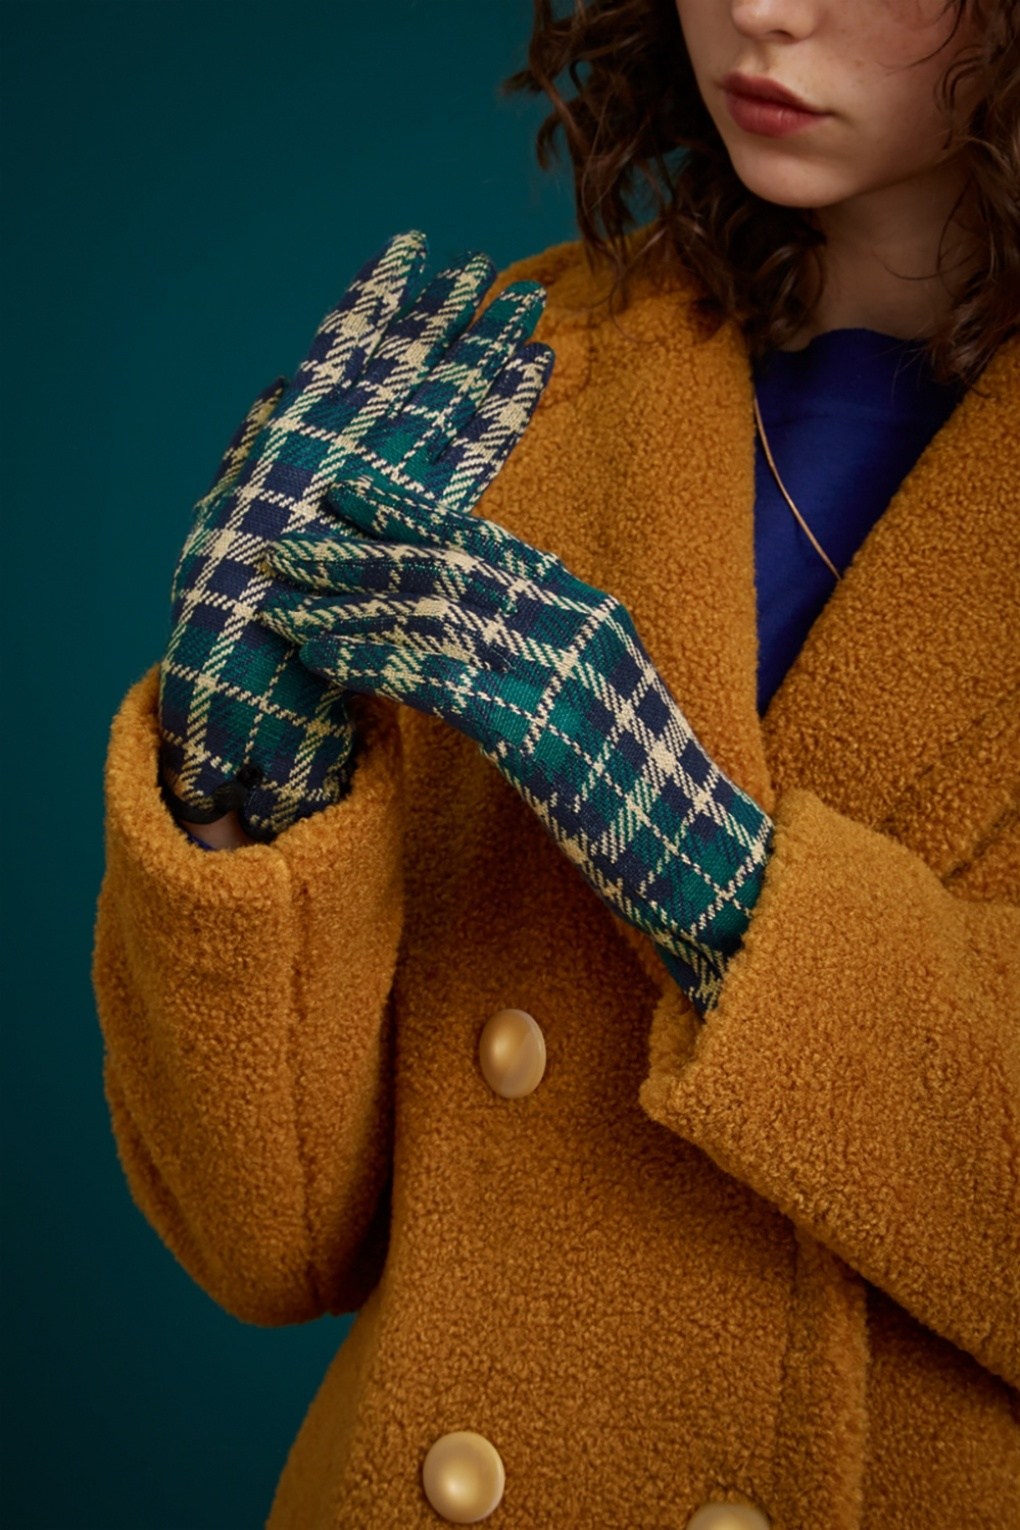 Vintage Style Gloves- Long, Wrist, Evening, Day, Leather, Lace 60s Zeppelin Gloves in Peacoat Blue £17.03 AT vintagedancer.com